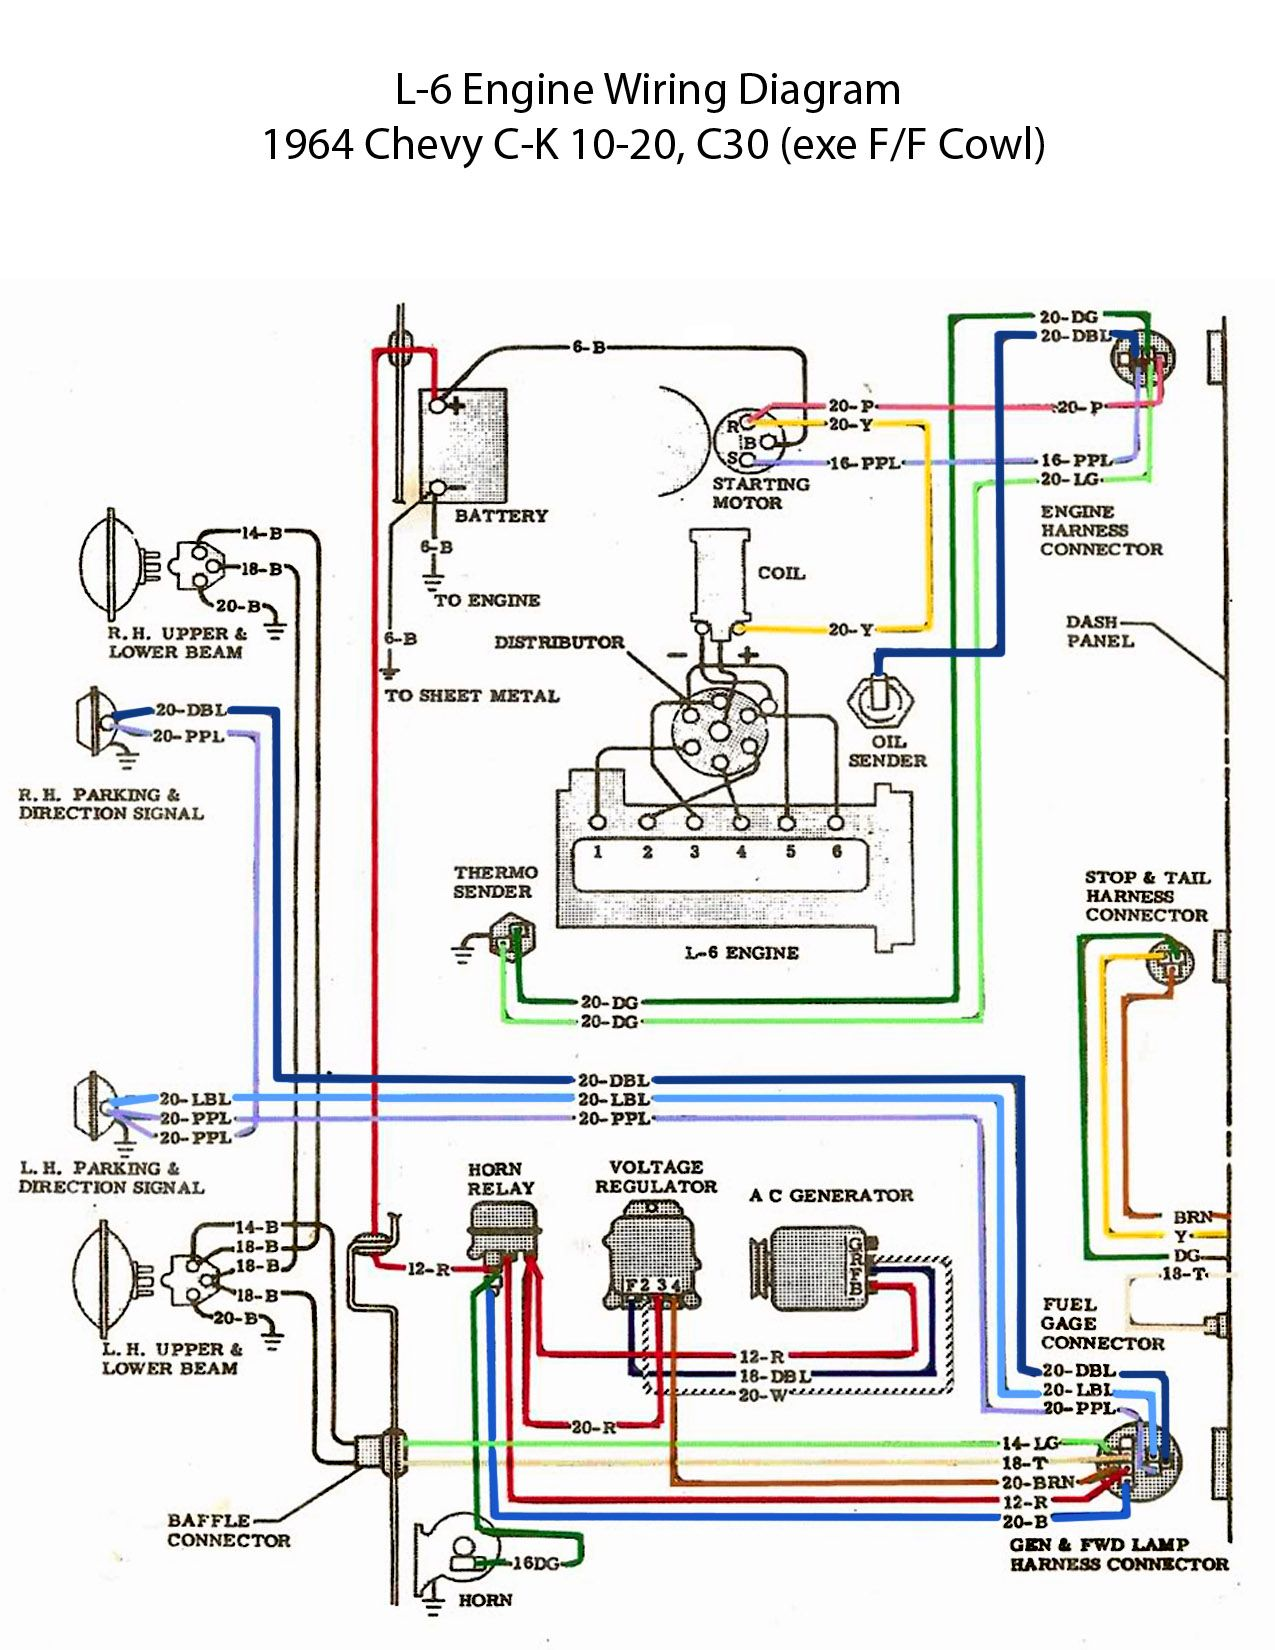 small resolution of gm alt wiring diagram 1989 3 wire alternator diagram gm alternator rh banyan palace com chevy